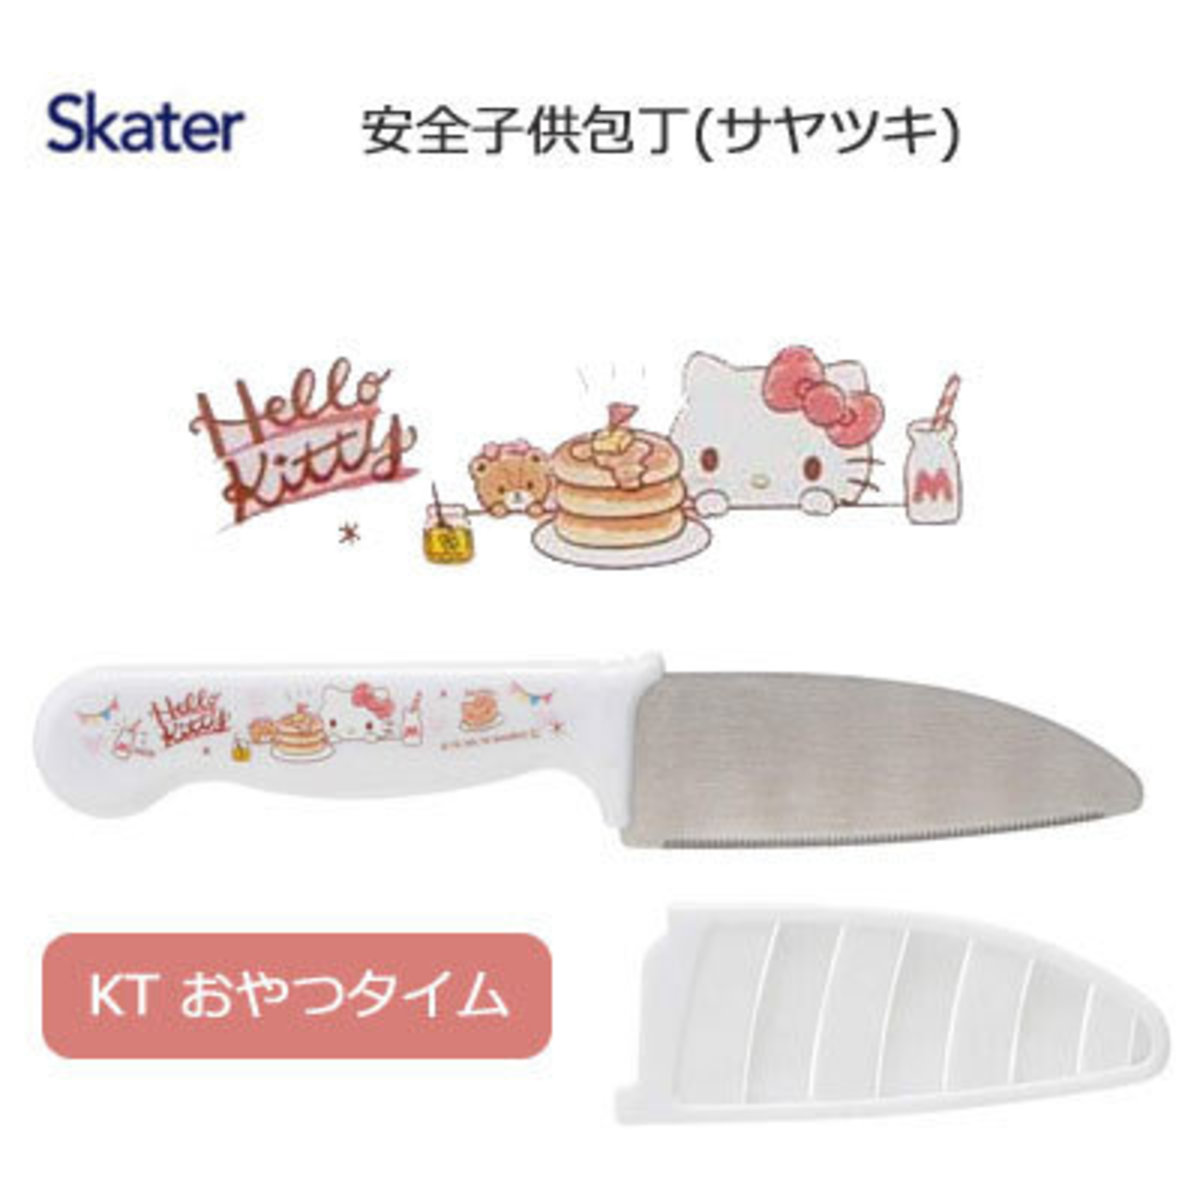 Stainless Steel Children's Knife with Knife Cover (Hello Kitty)